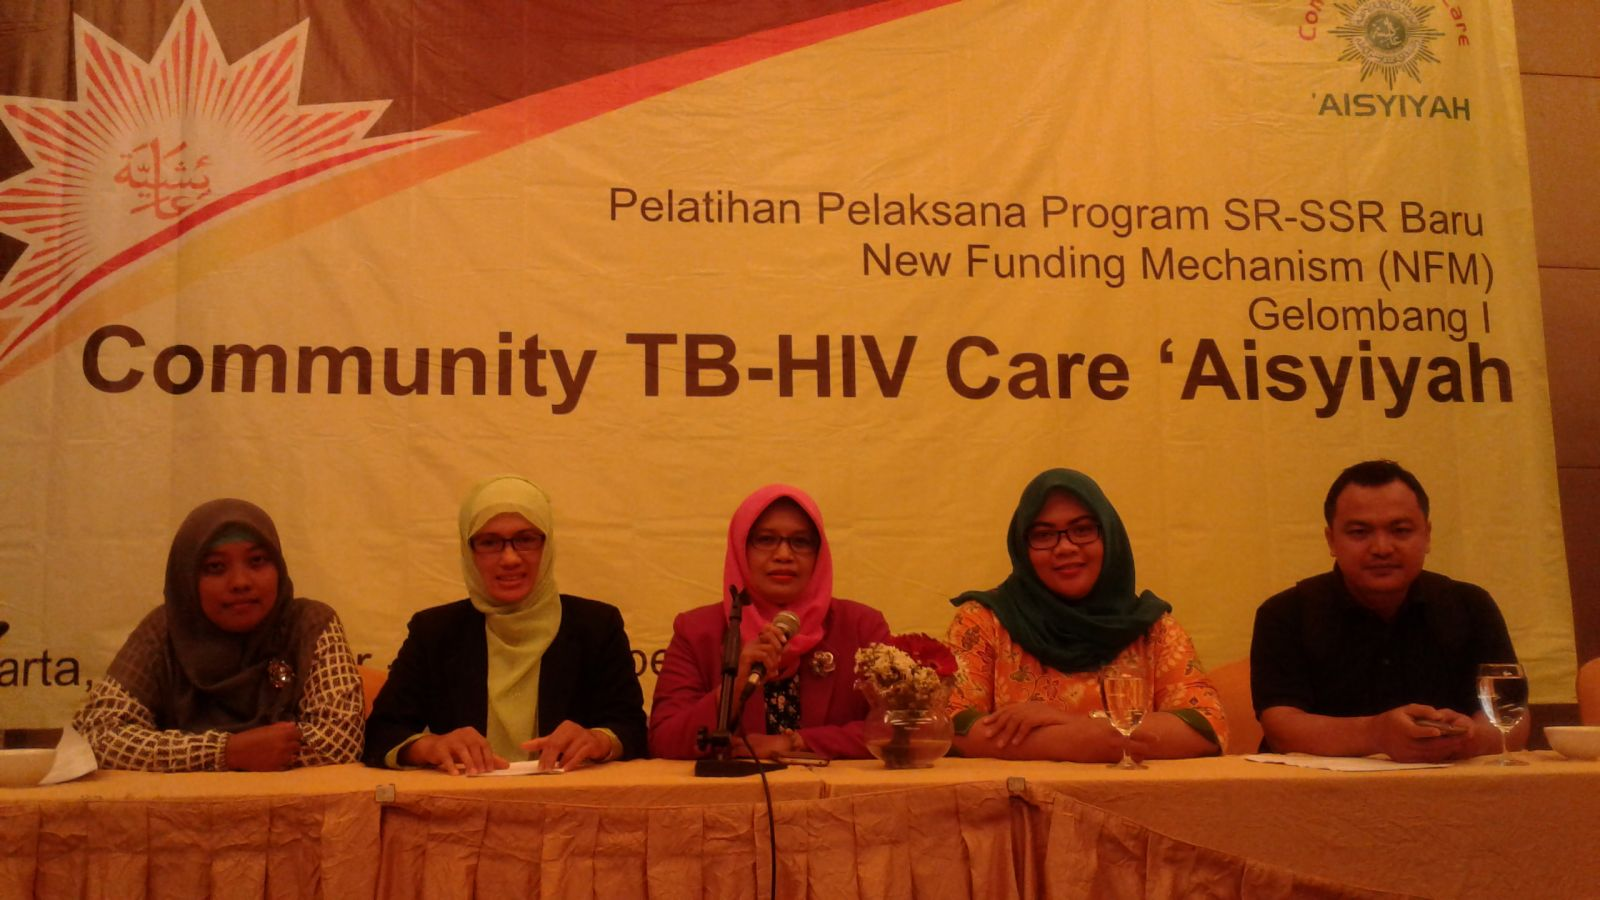 Pelatihan Pelaksanaan Program SR-SSR Community TB-HIV Care